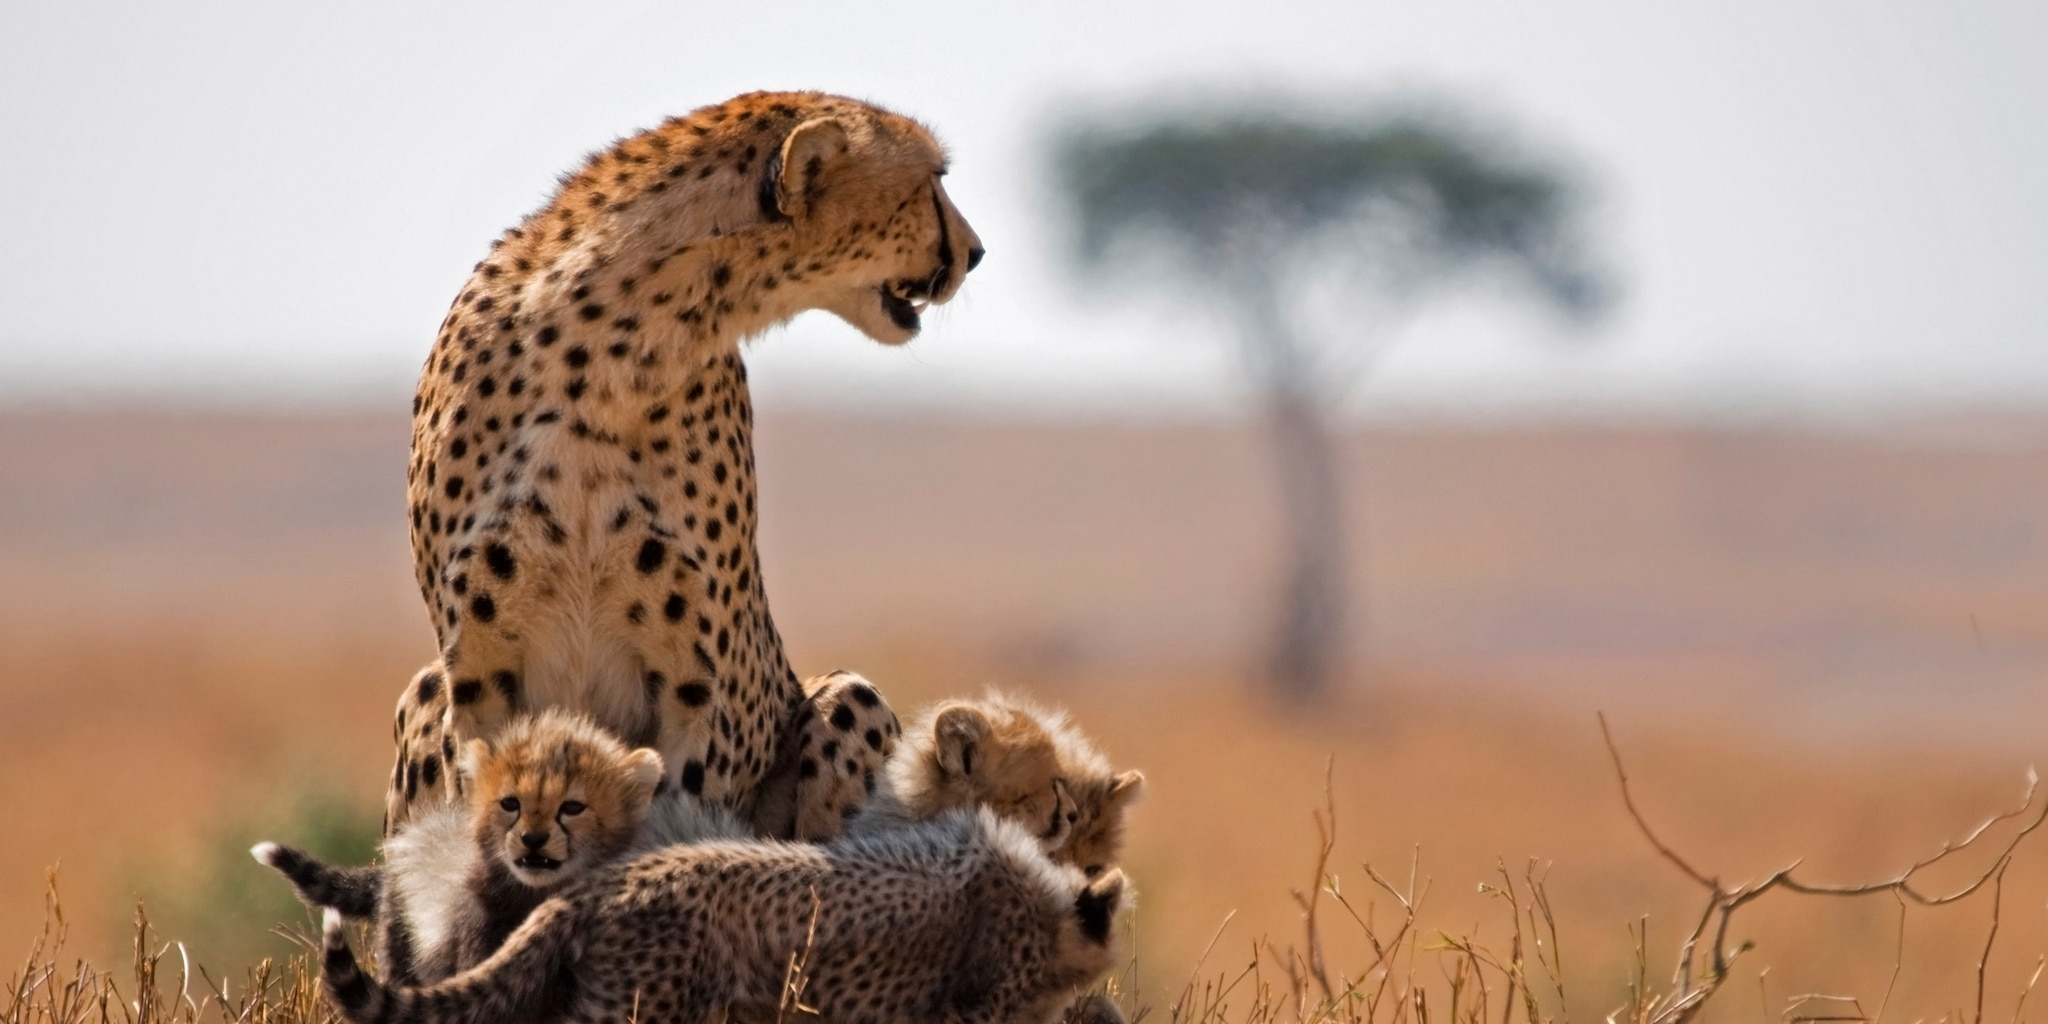 A mother leopard watches over her cubs on the South African bush